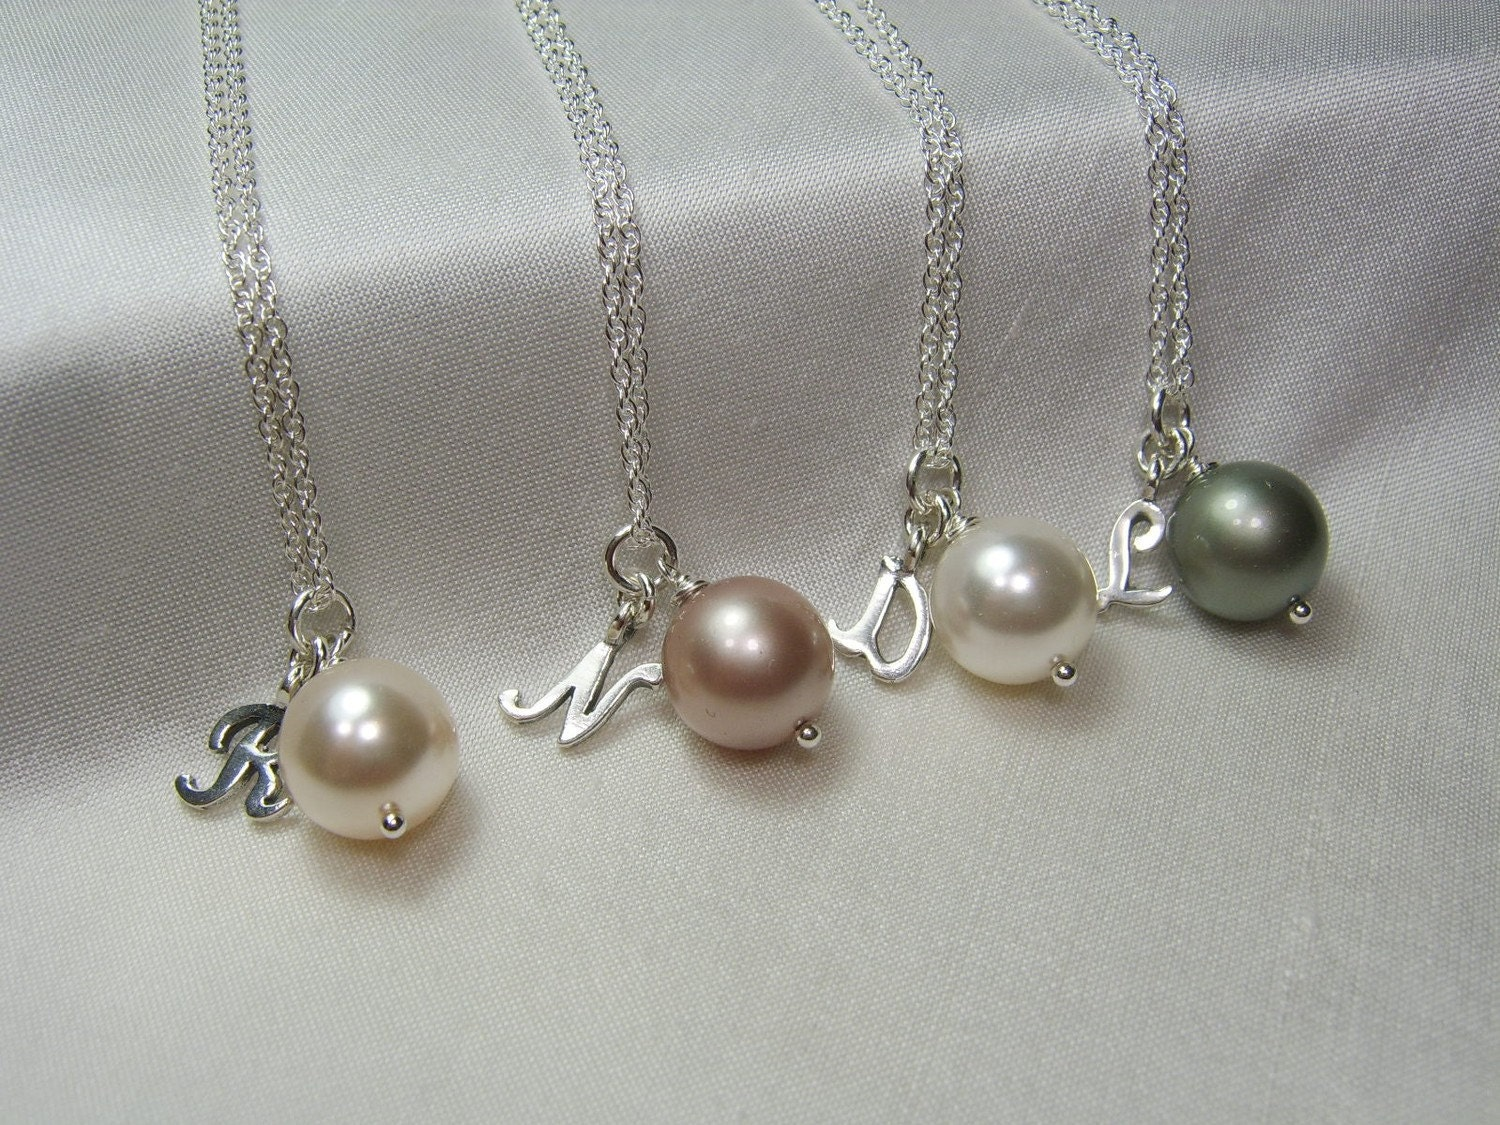 Initial Necklace with Swarovski Pearl